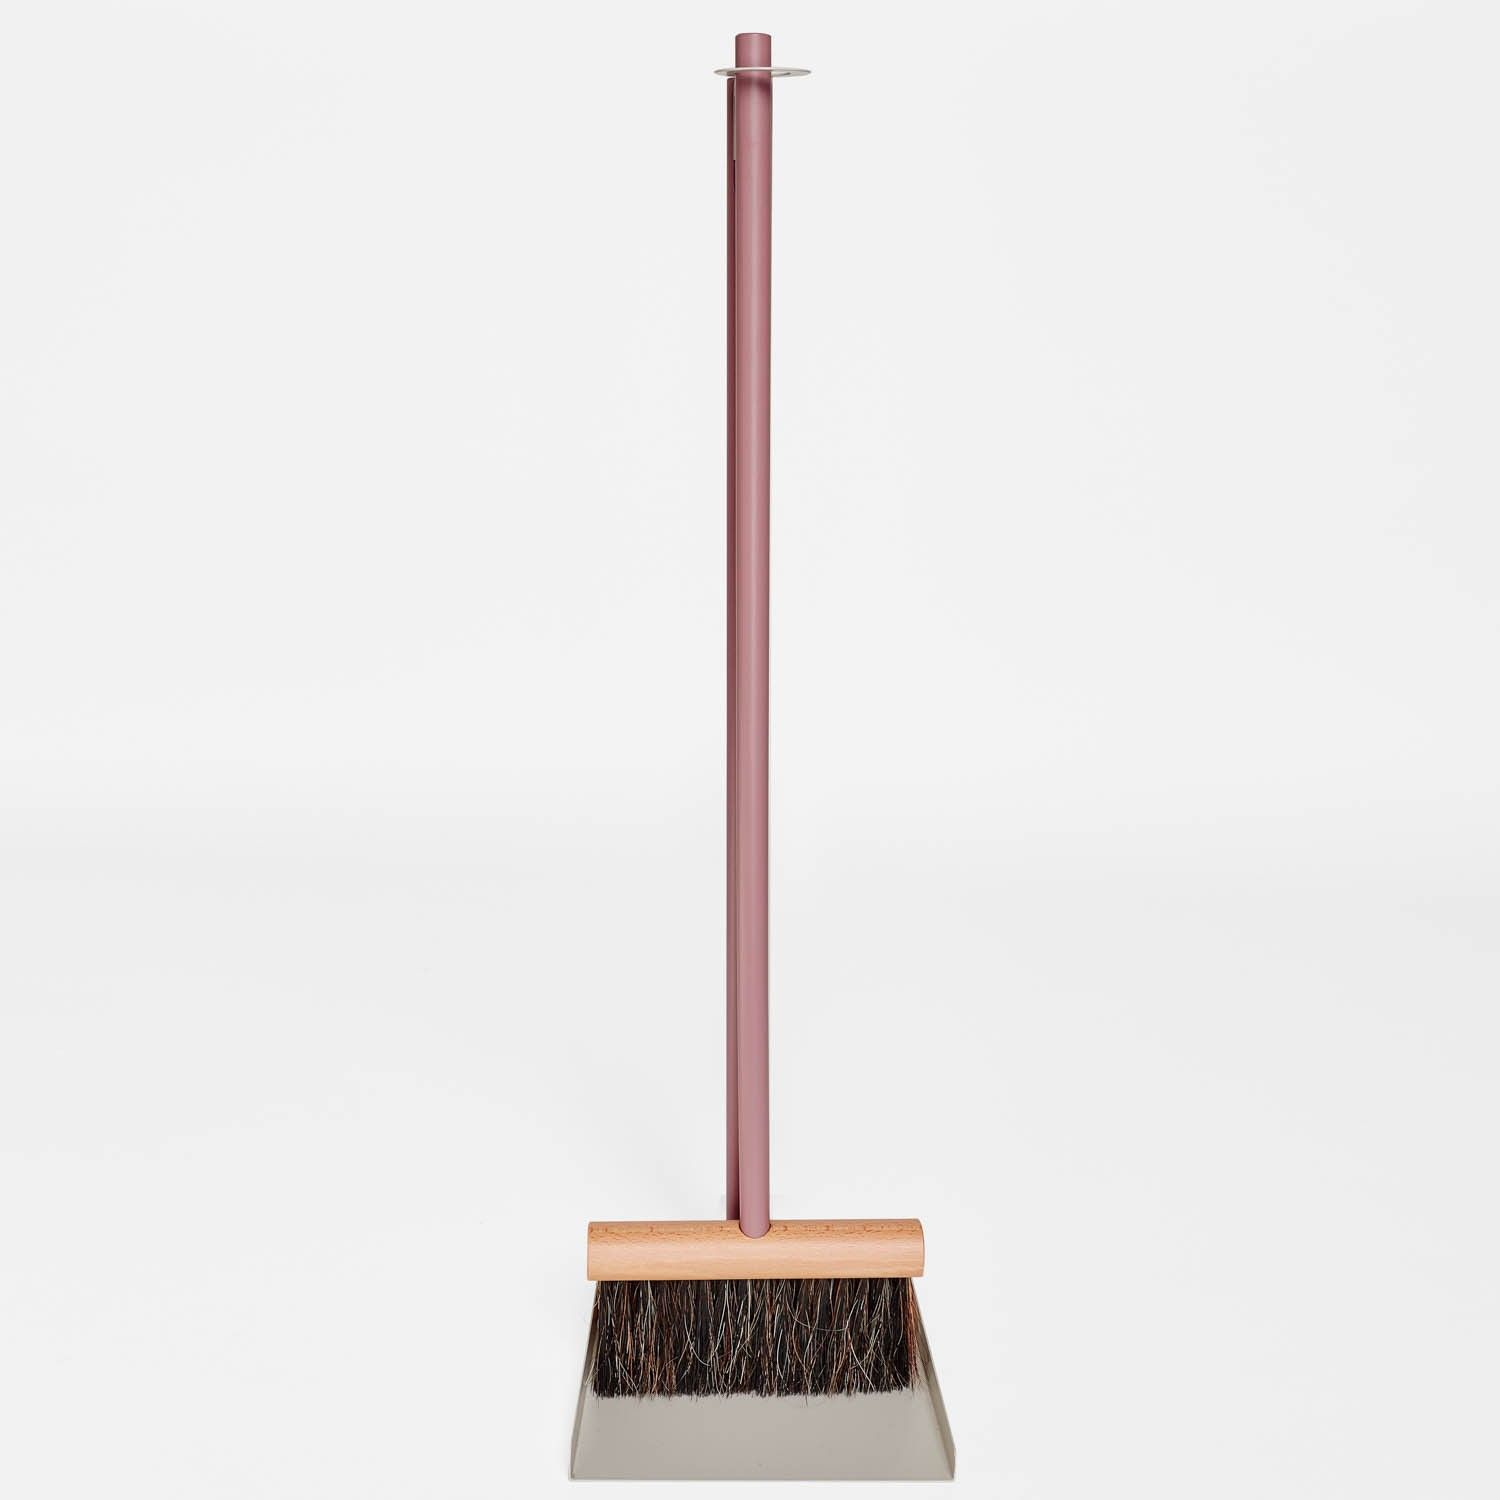 Natural materials - like oil-treated French beech wood and horsehair - bring the art of fine, handmade tools back into everyday cleaning. Tough bristles pick up dust, dirt, and grime naturally and without leaving residue. This standing broom and dustpan provide thorough cleaning and feature a sleek aesthetic.